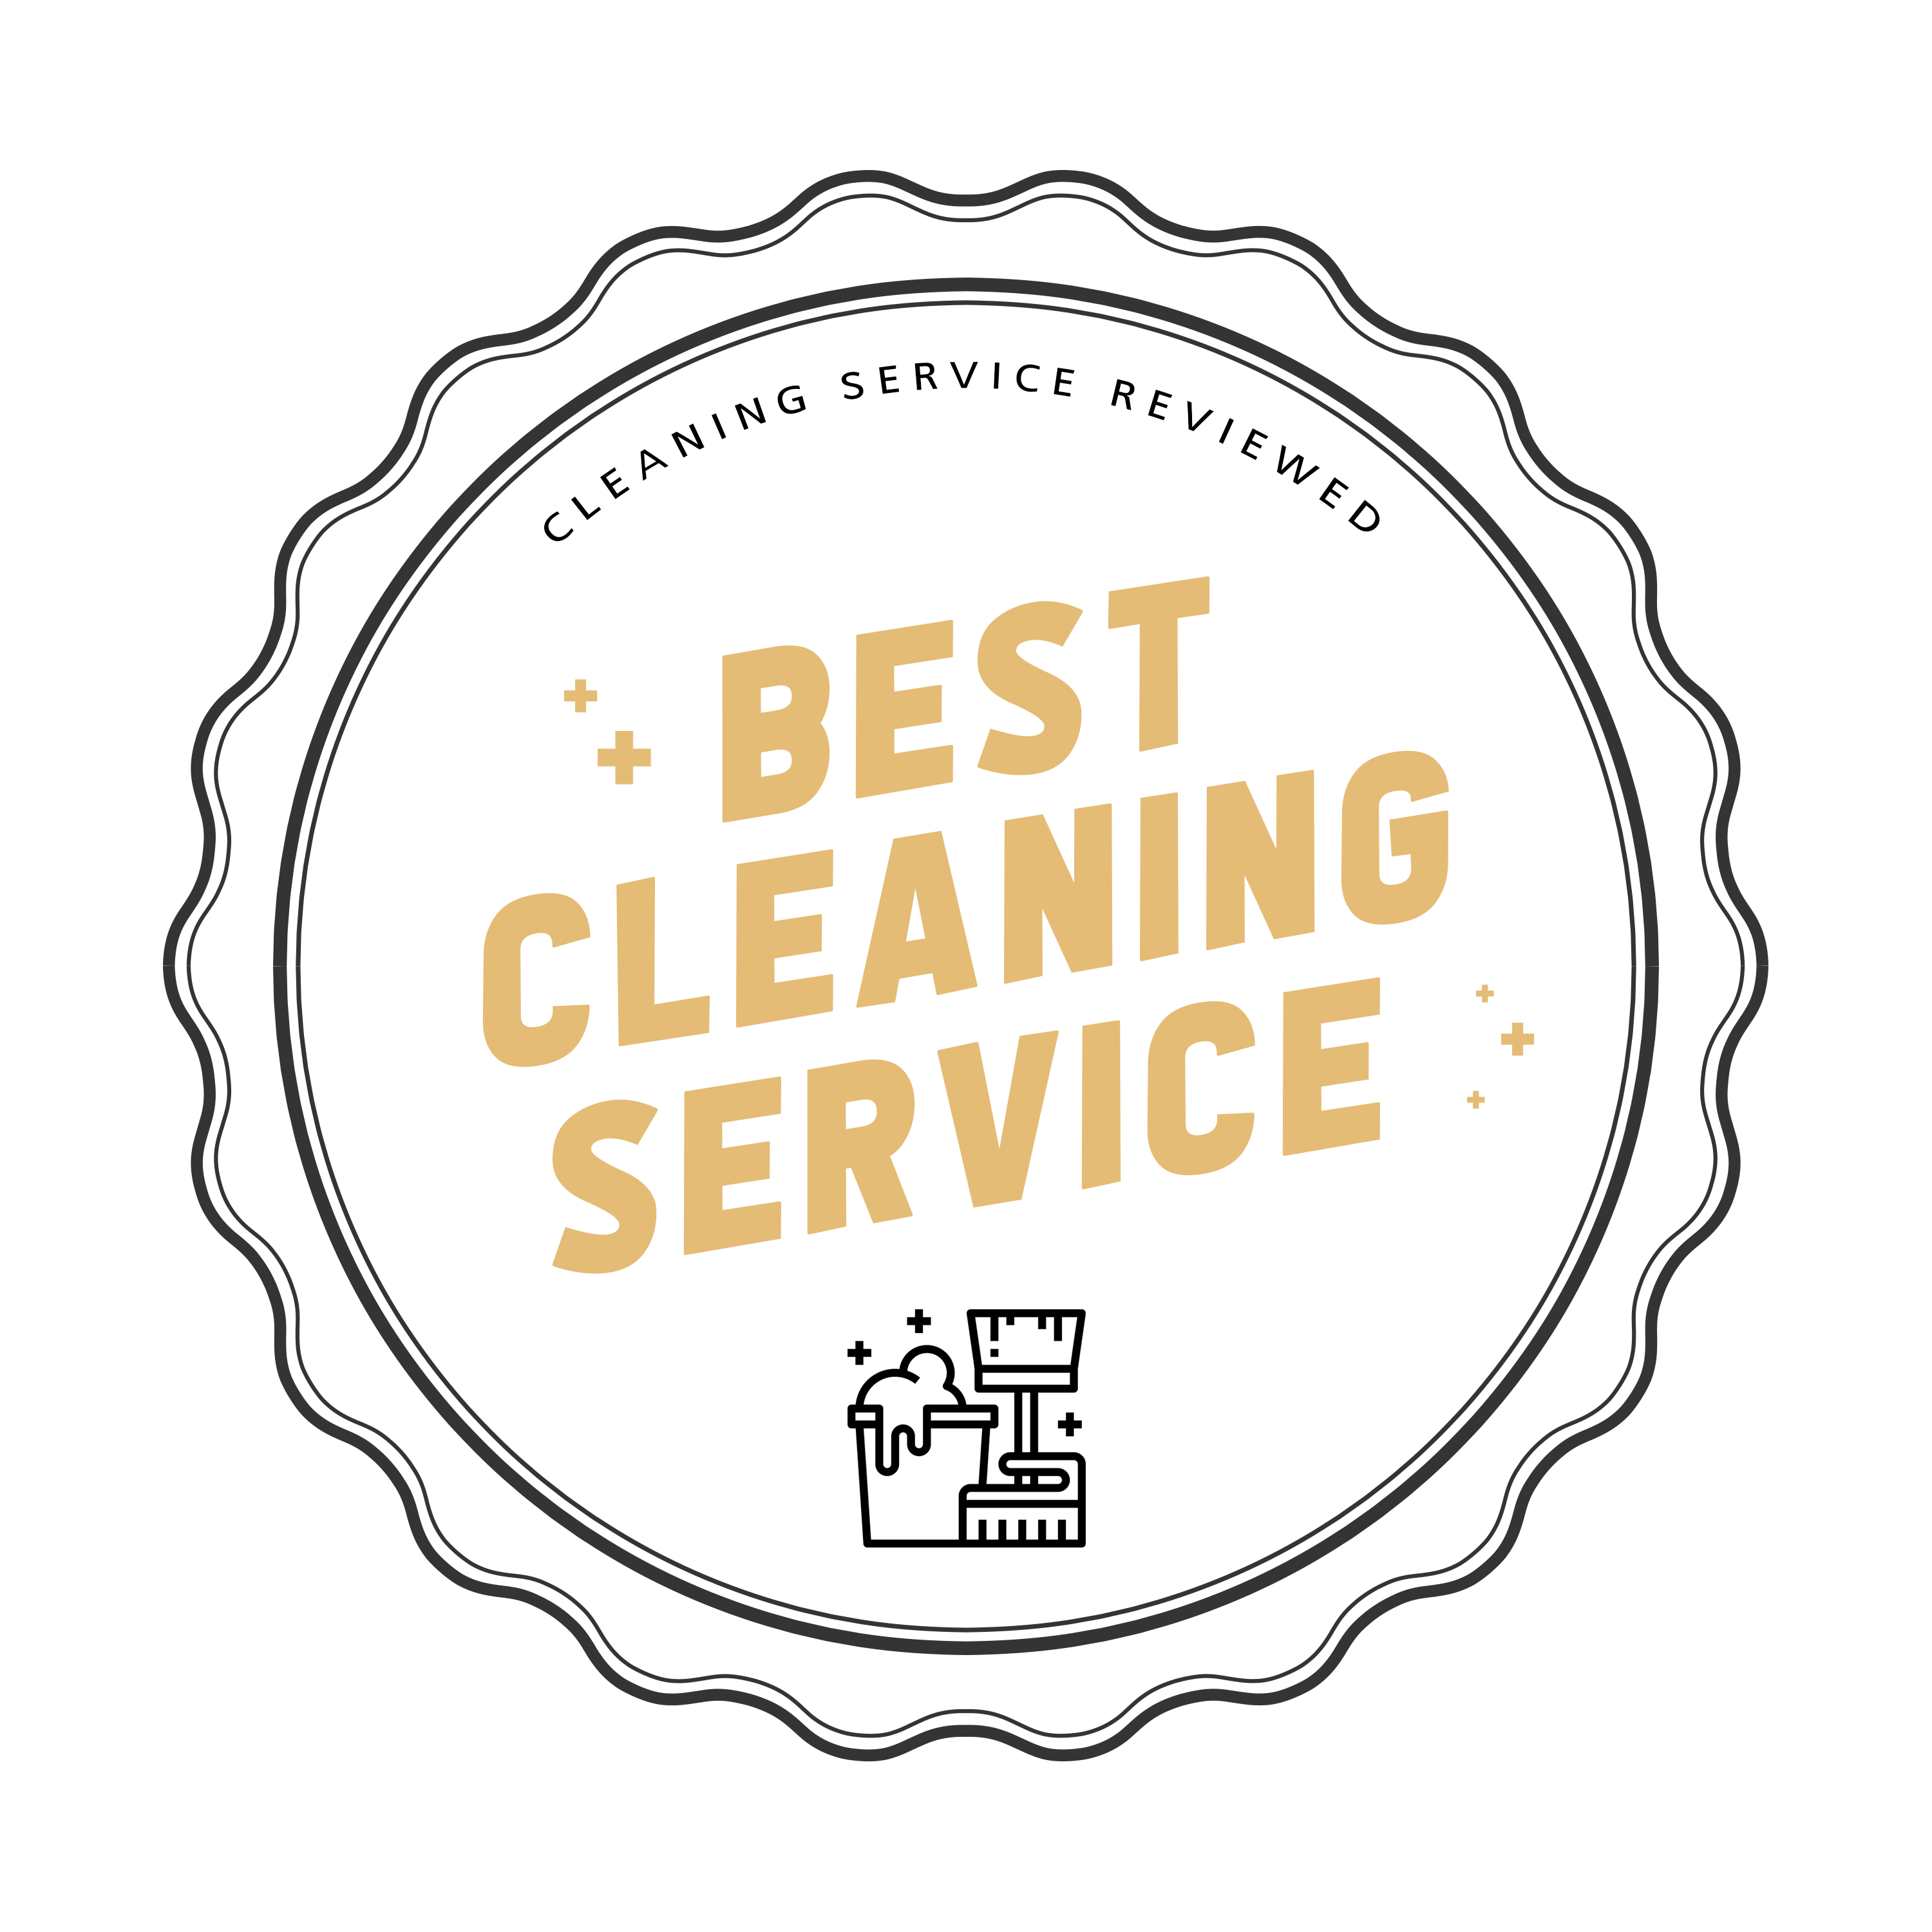 cleaning service reviewed - Best cleaning service